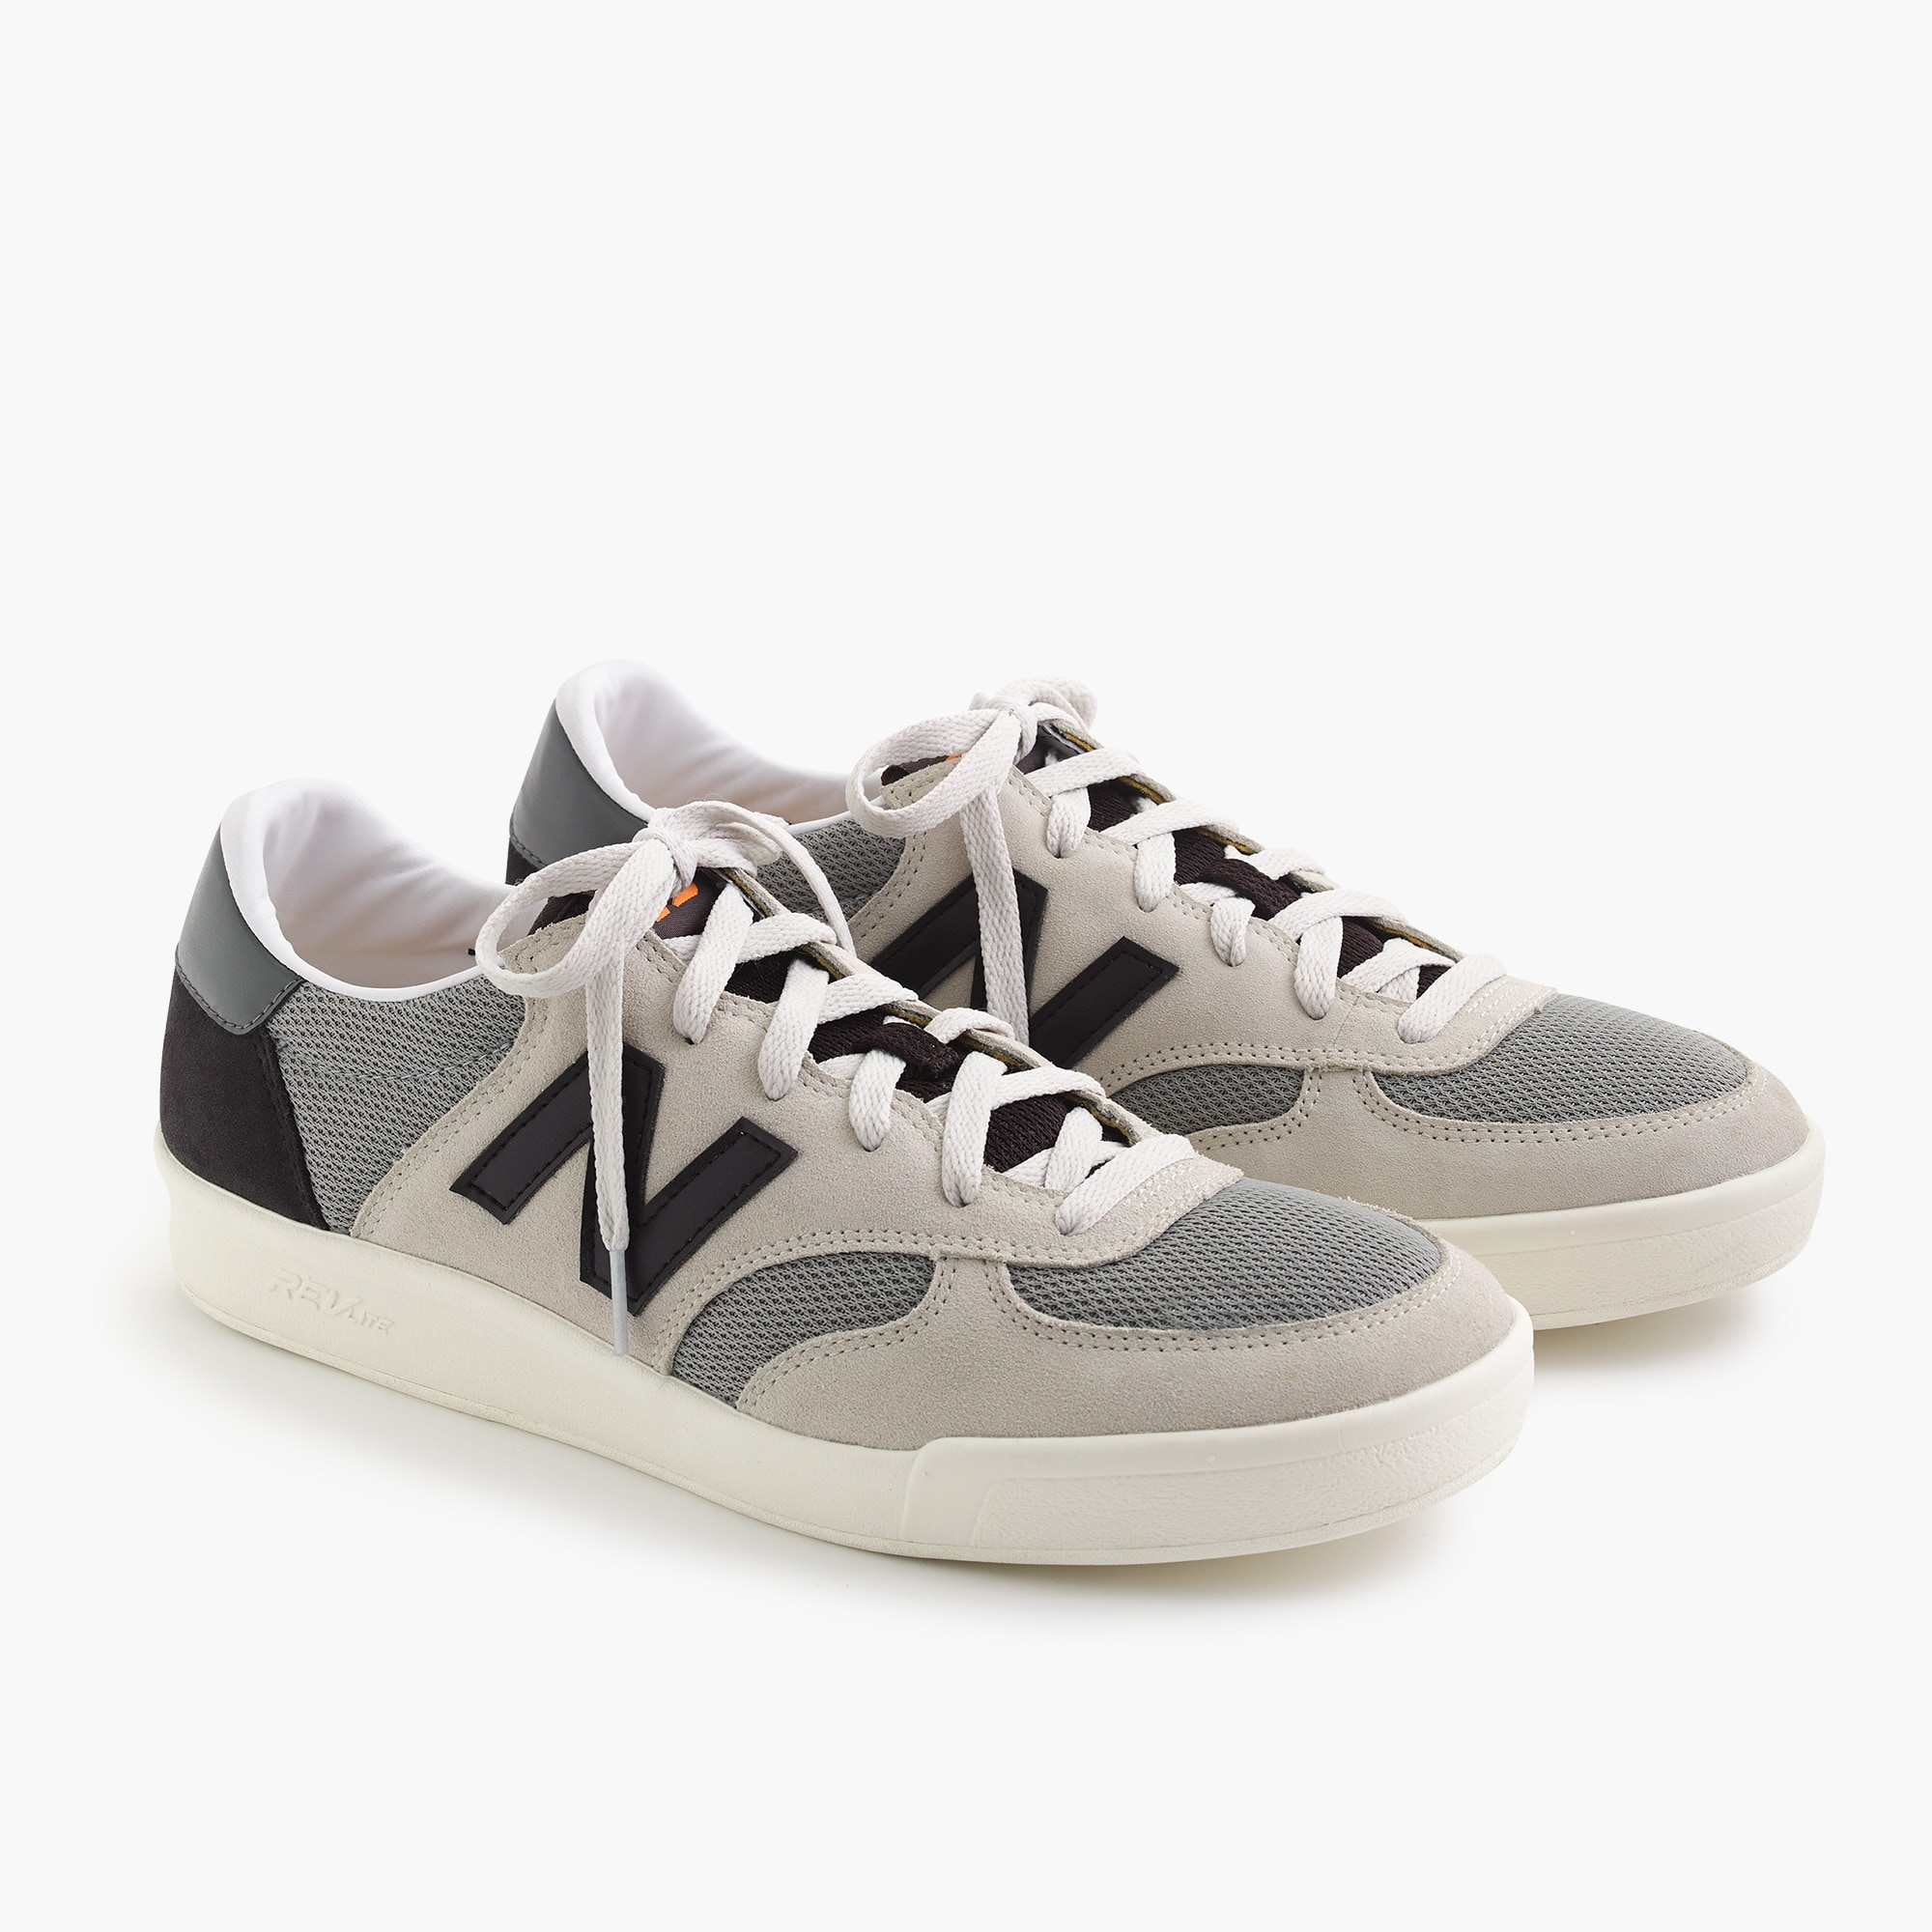 mens New Balance® for J.Crew CRT300 sneakers